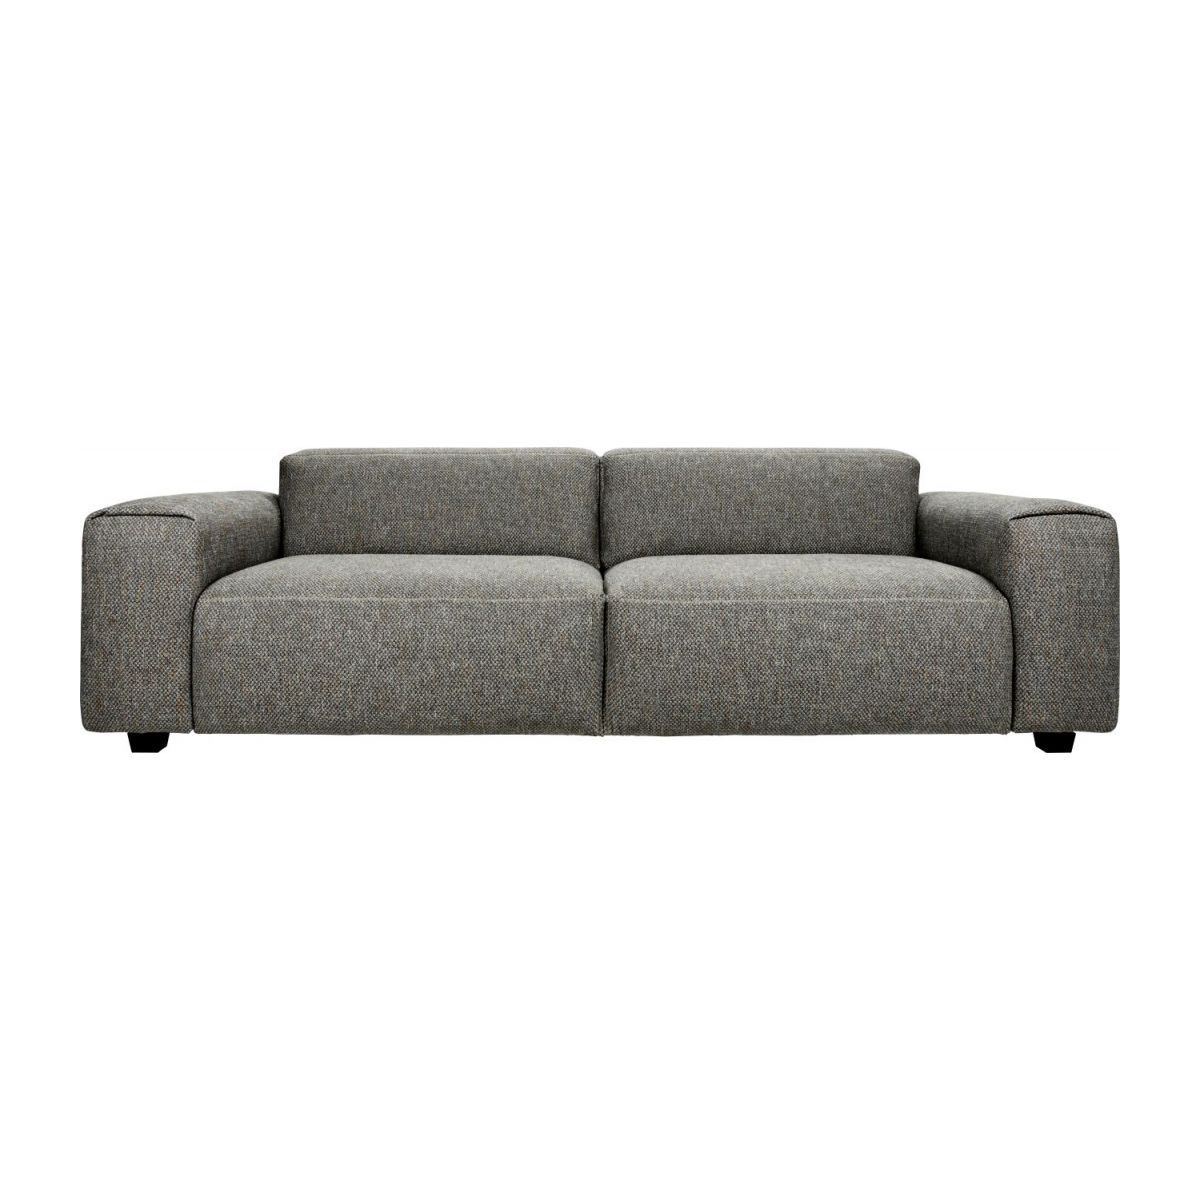 Canape Sofa Posada 4 Seater Sofa In Bellagio Fabric Night Black